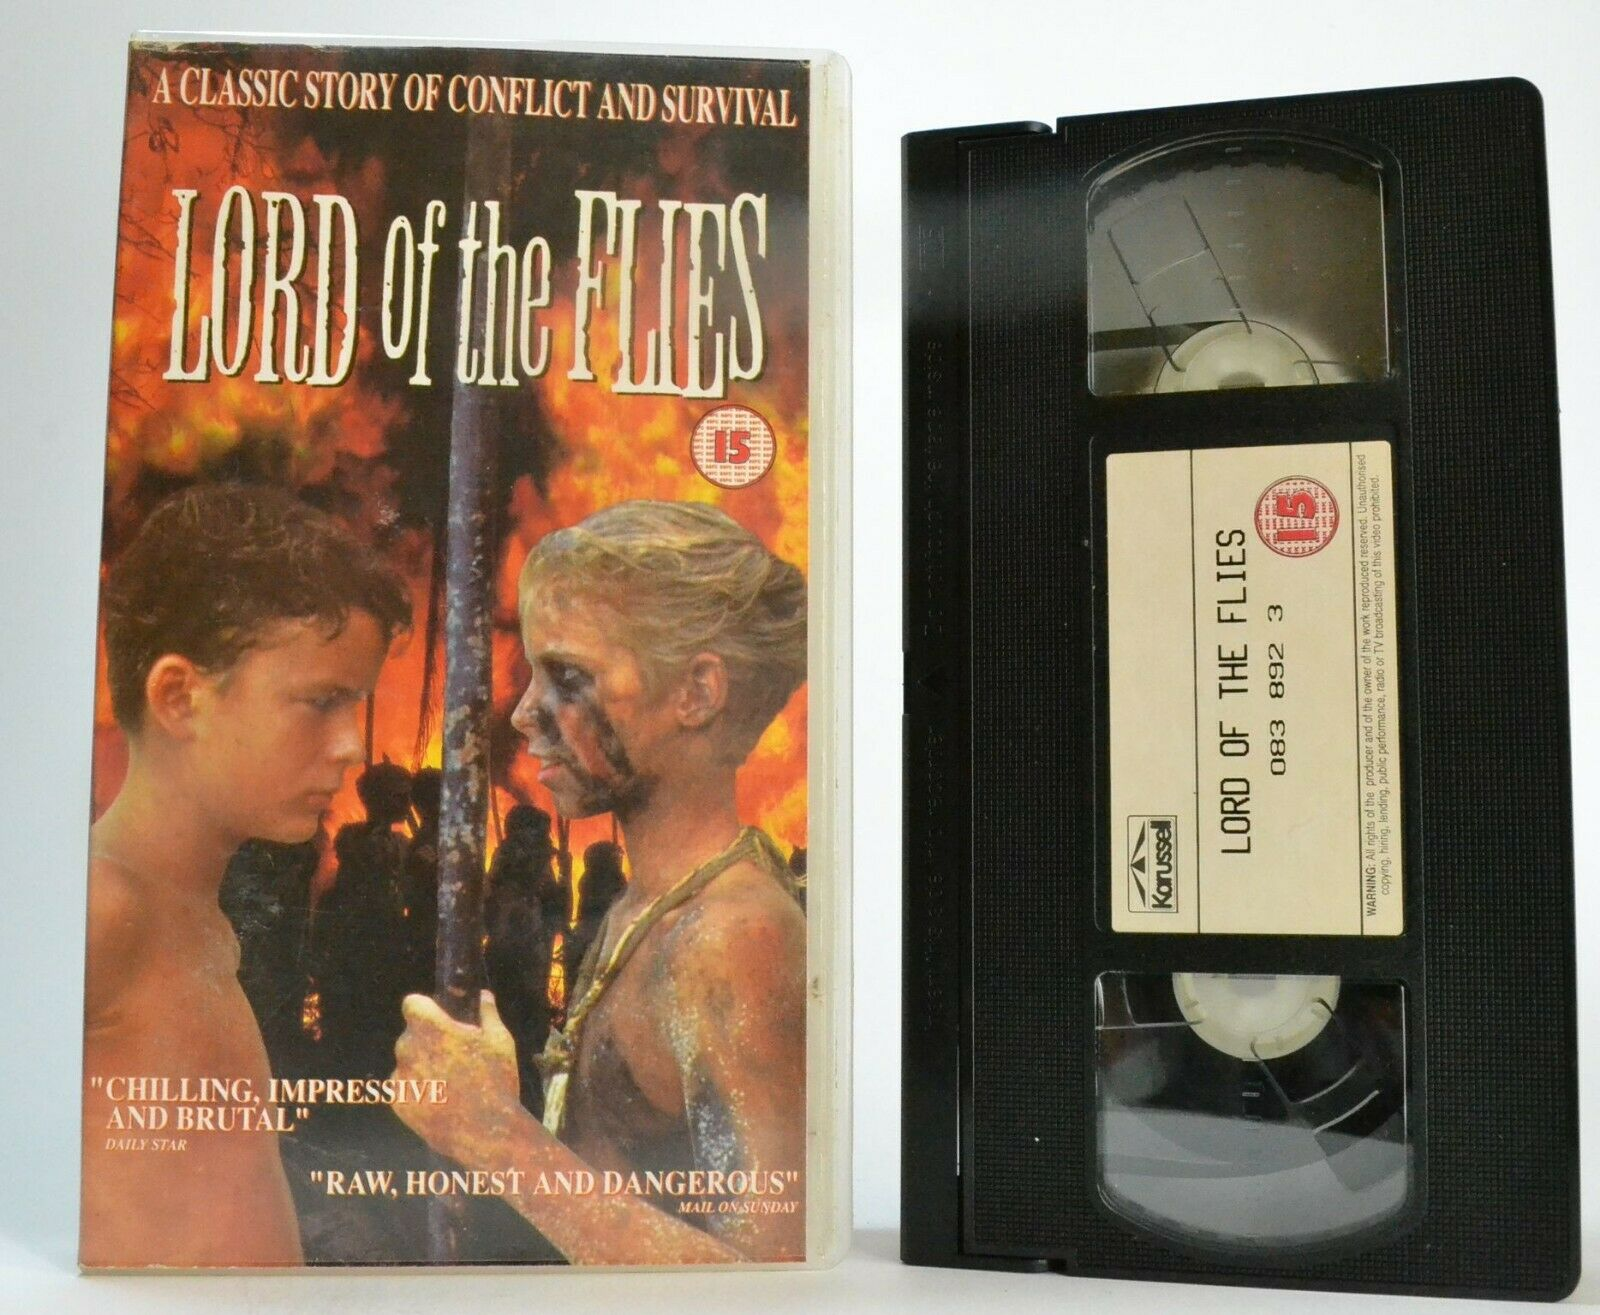 Lord Of The Flies (1990); [William Golding] - Survival Drama - Chris Furrh - VHS